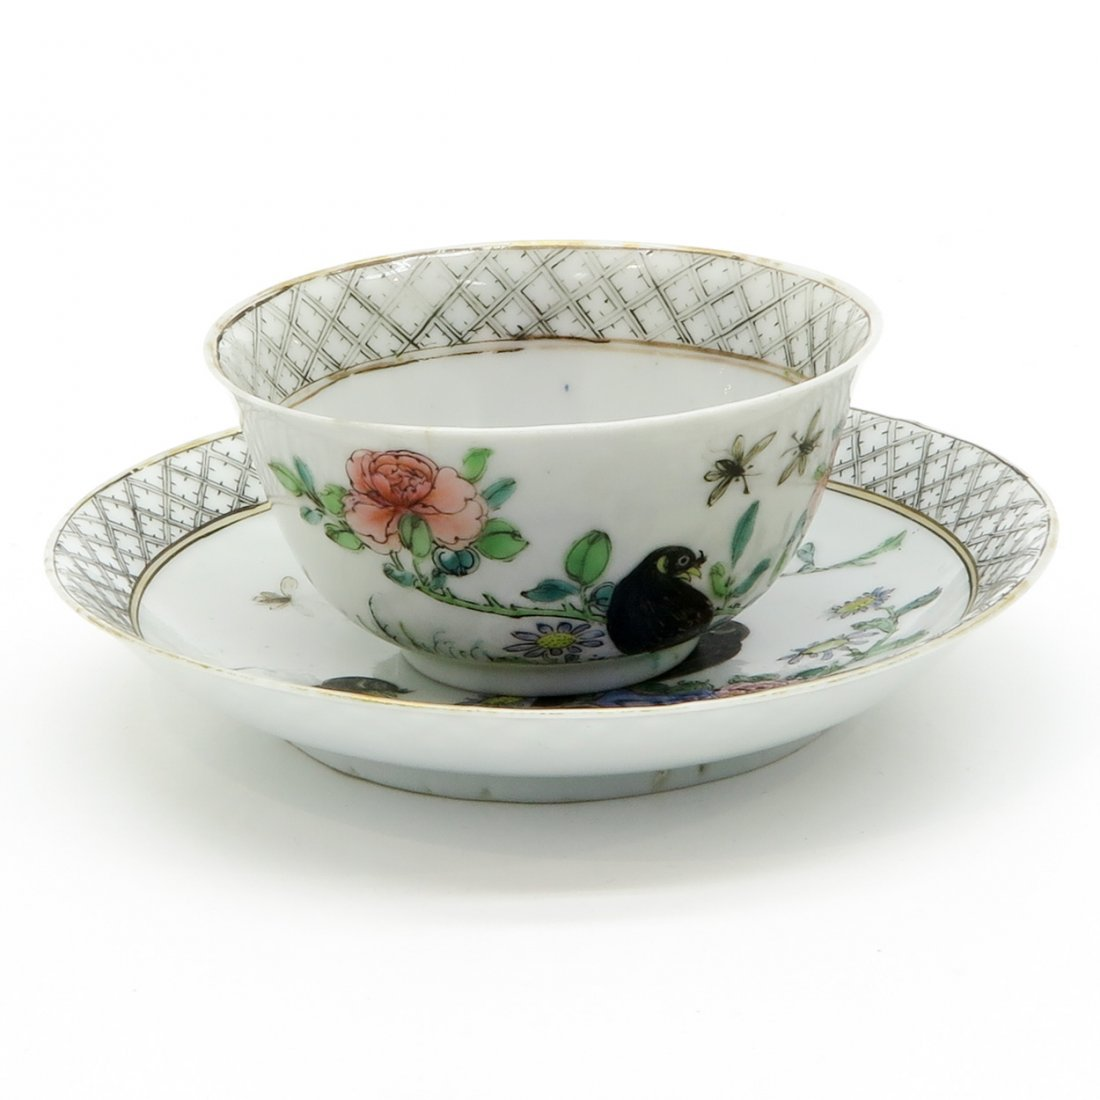 Encre de Chine Cup and Saucer